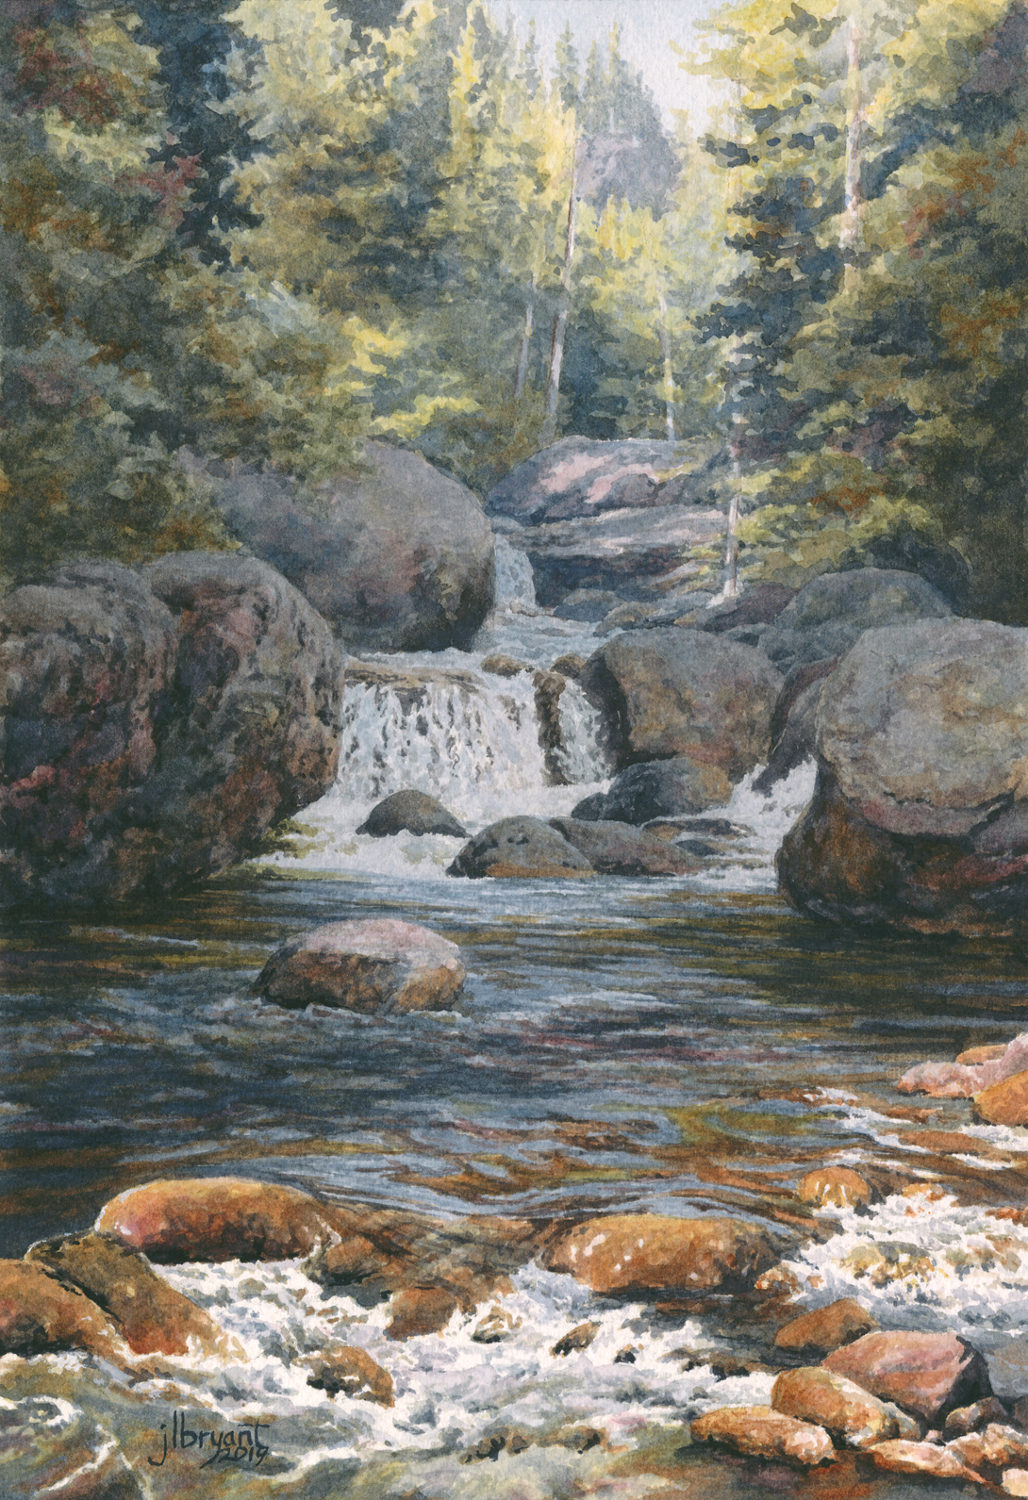 "Copeland Falls, Rocky Mountain National Park  watercolor : 10.5 x 7"" : print $60 : original available through  Coeur d'Alene Galleries"